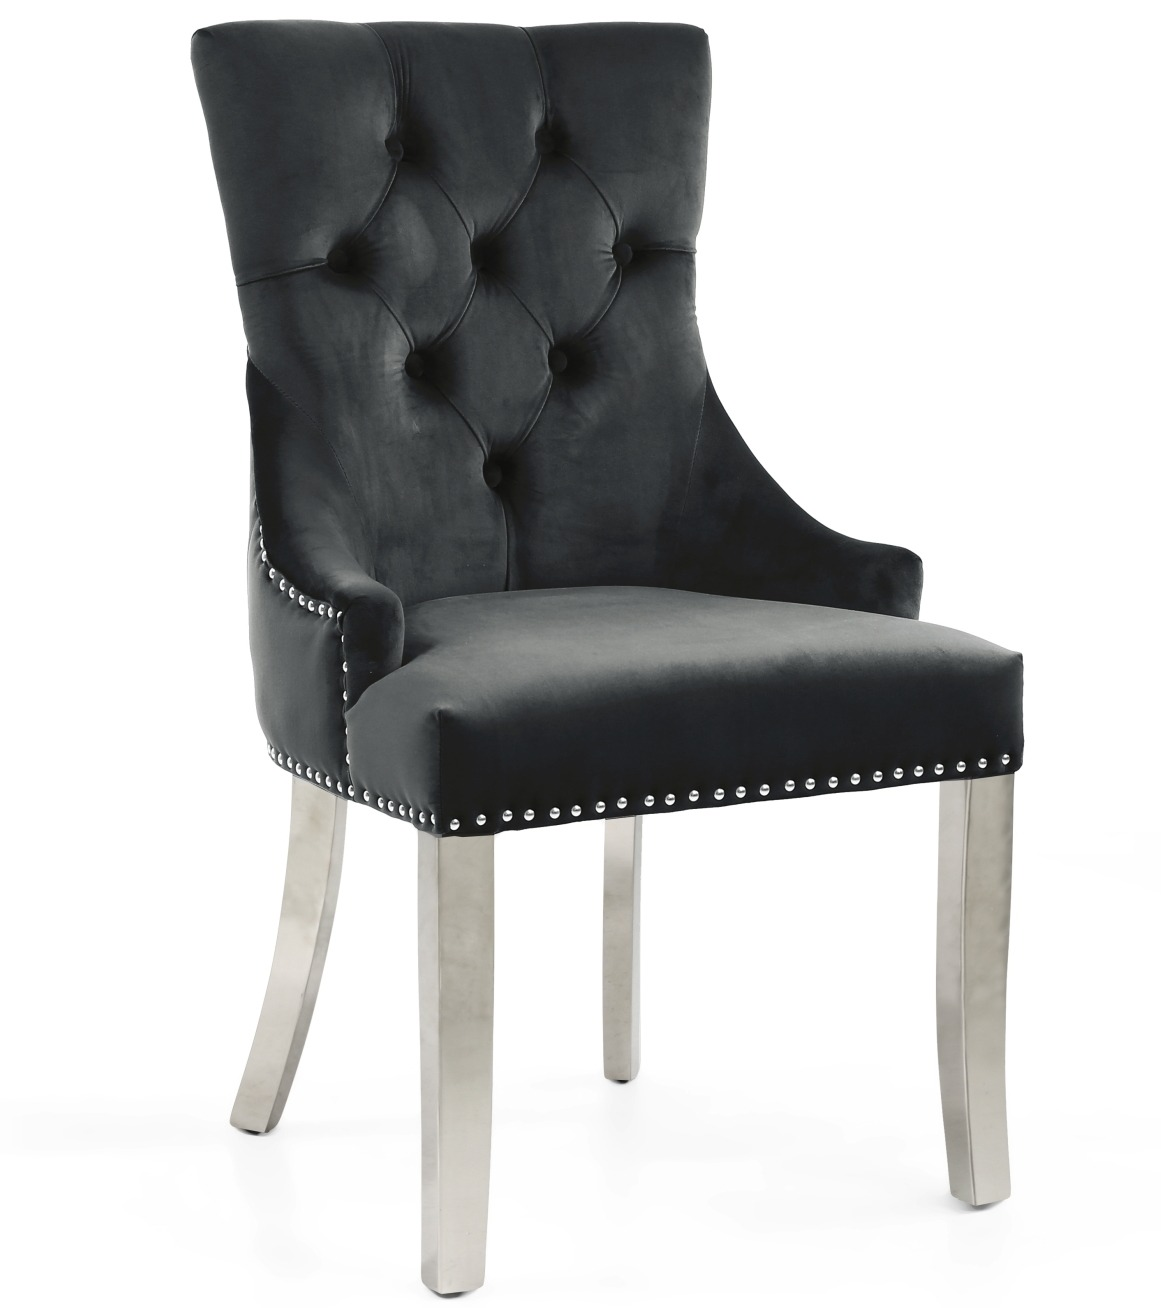 Chester Black velvet dining chair with steel legs